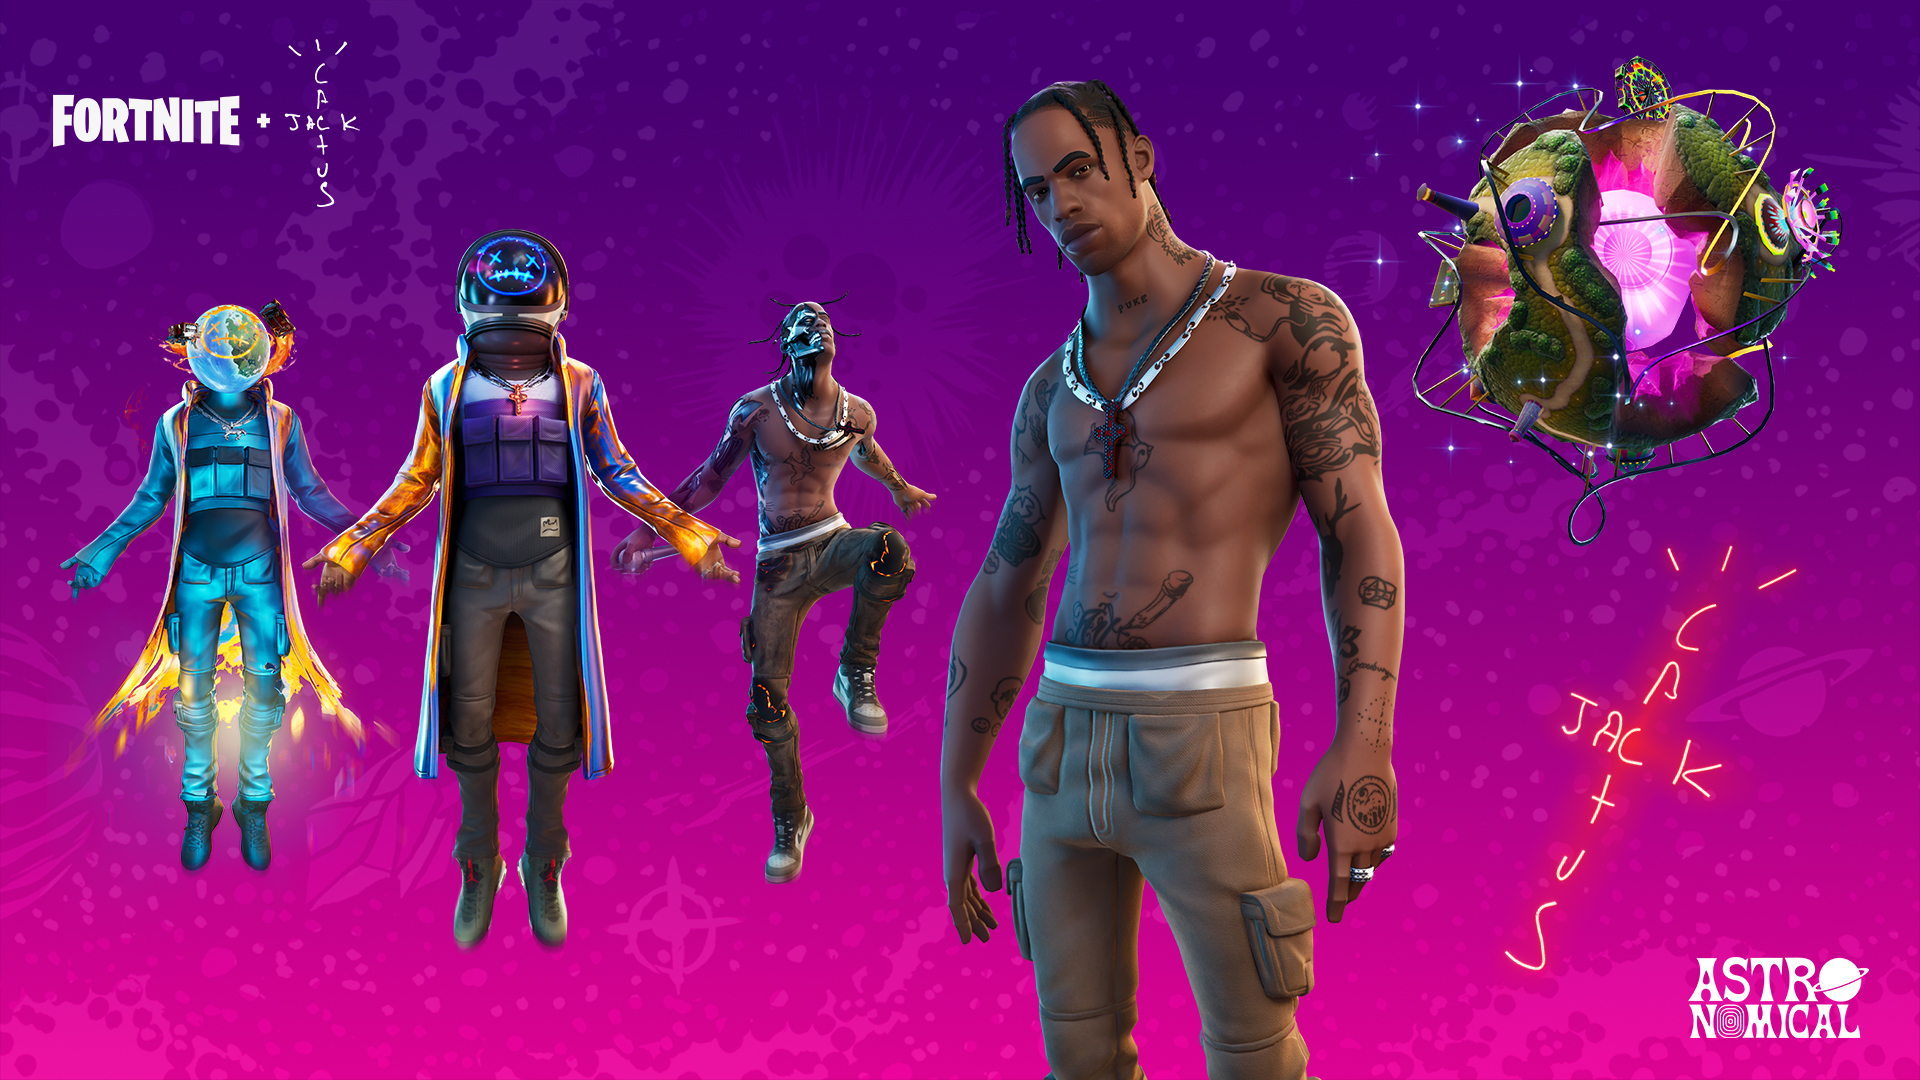 Travis Scott Fortnite Wallpaper Hd Games 4k Wallpapers Images Photos And Background